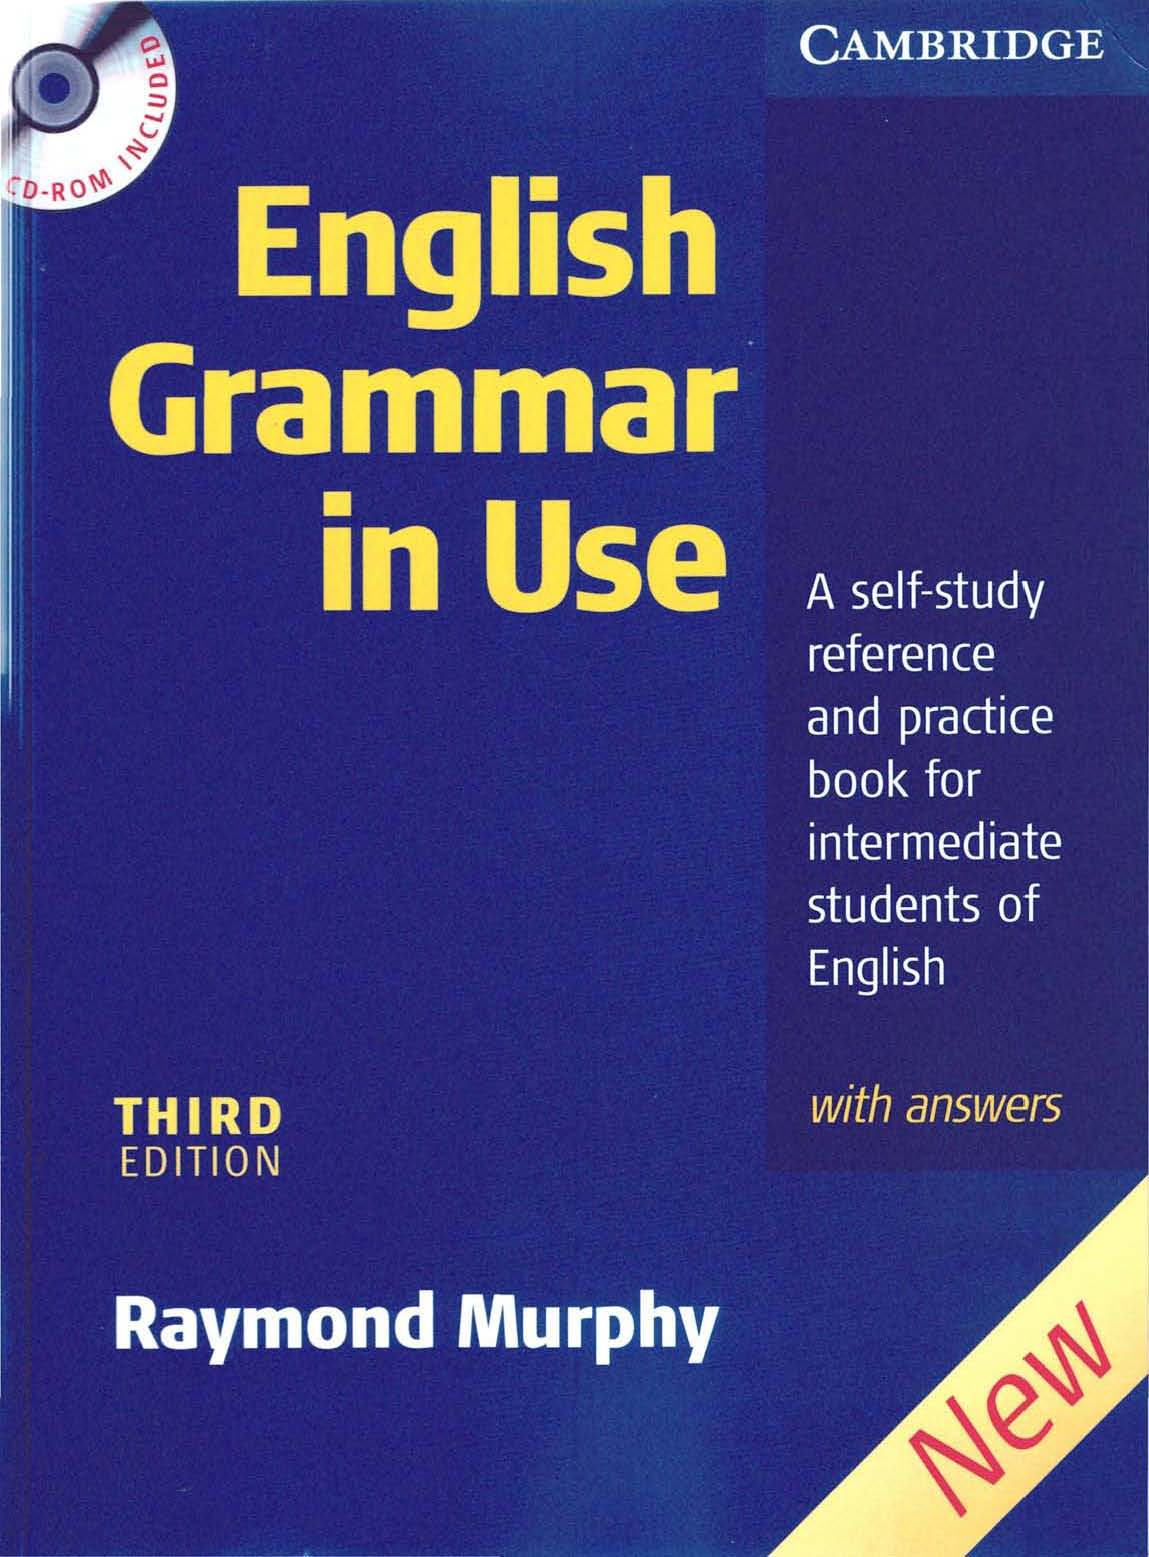 Download English Grammar In Use With Answers 3 Edition M